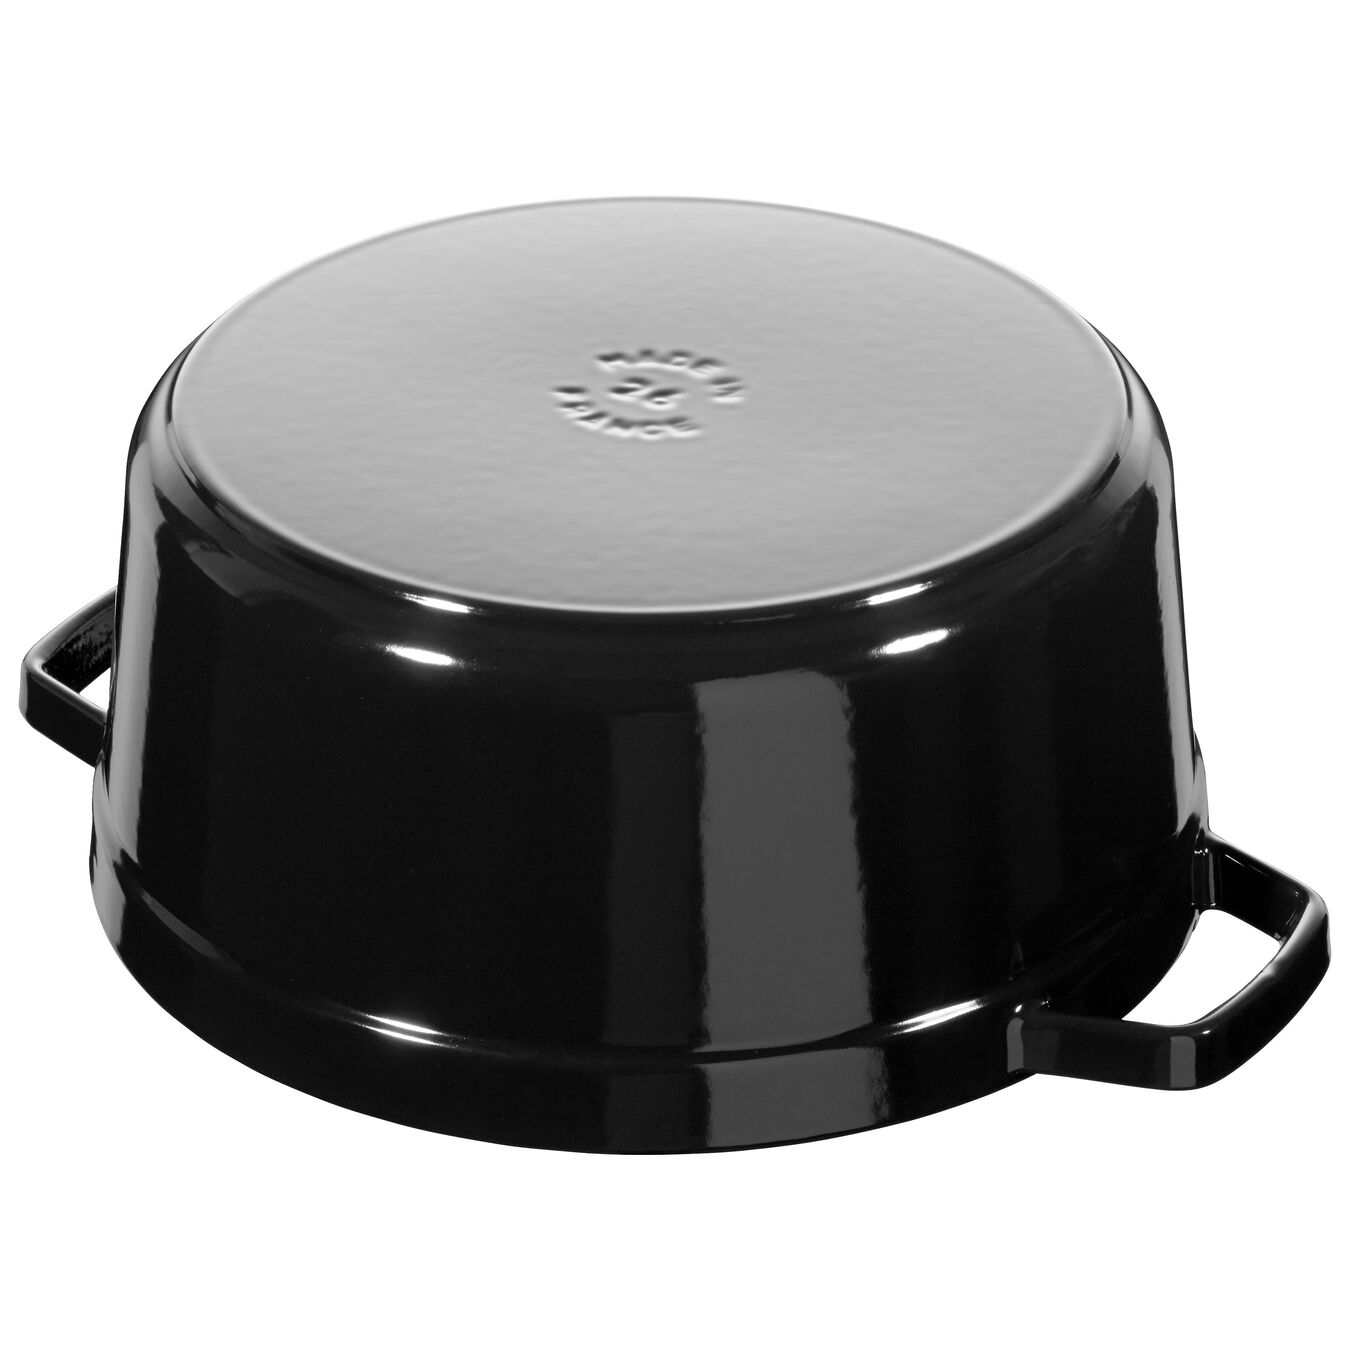 5.25 l Cast iron round Cocotte, shiny-black - Visual Imperfections,,large 5